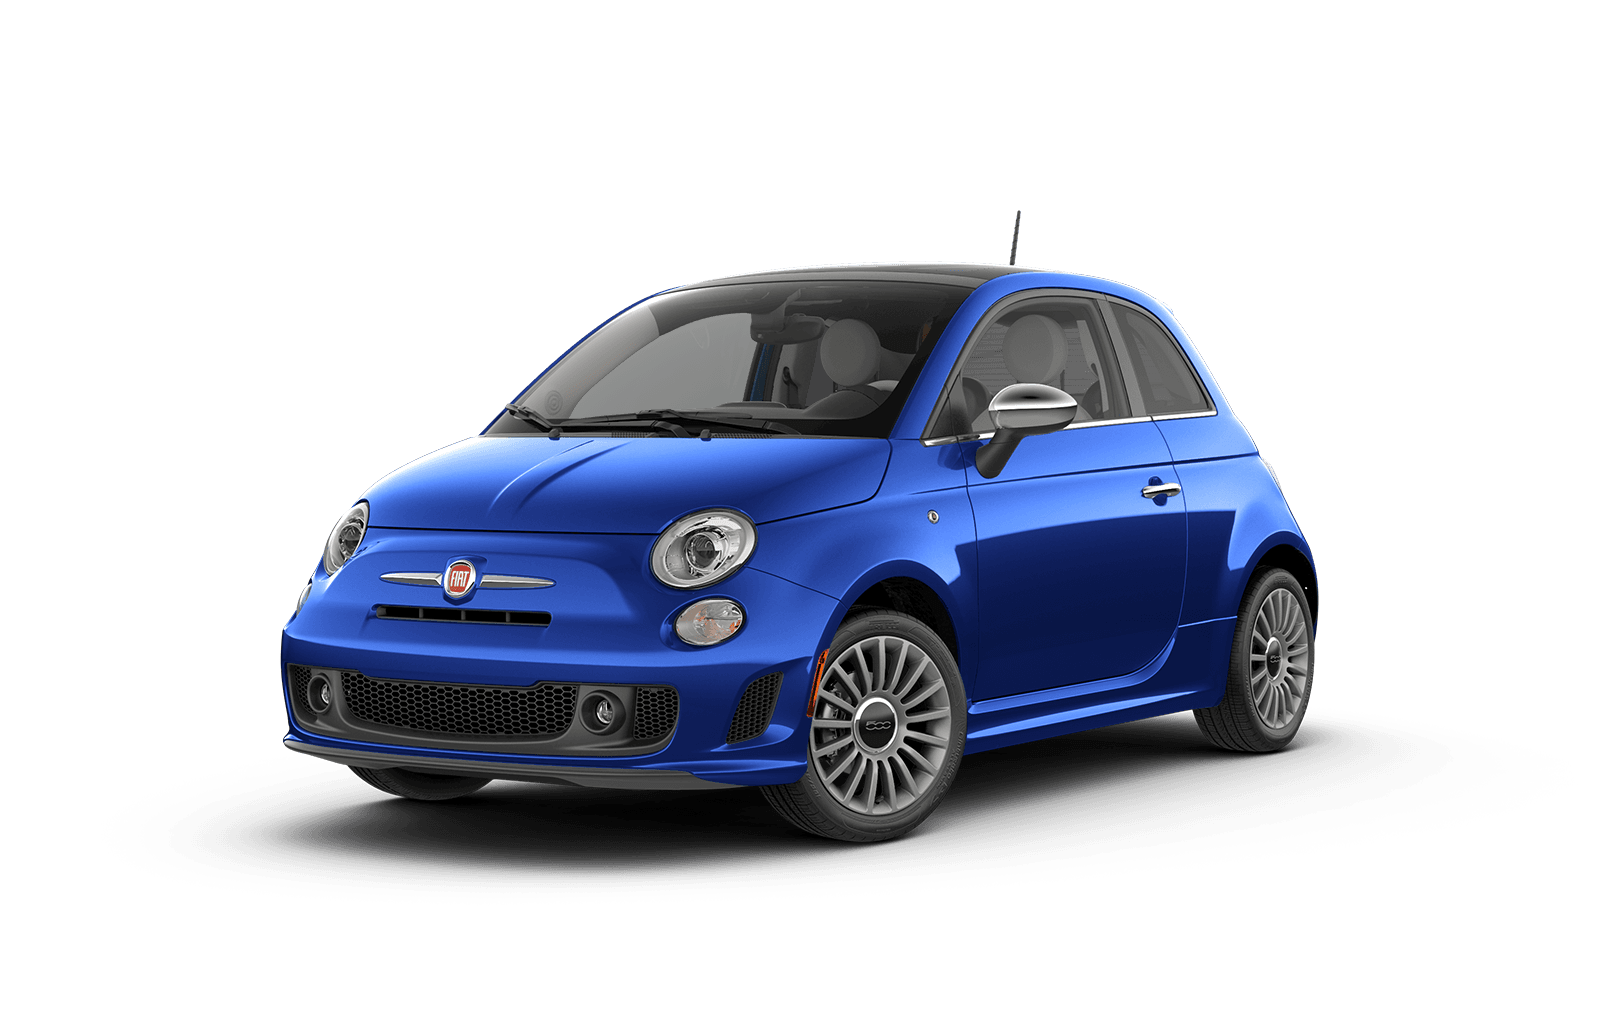 2018 FIAT 500 Full View in Bright Blue with Wheels